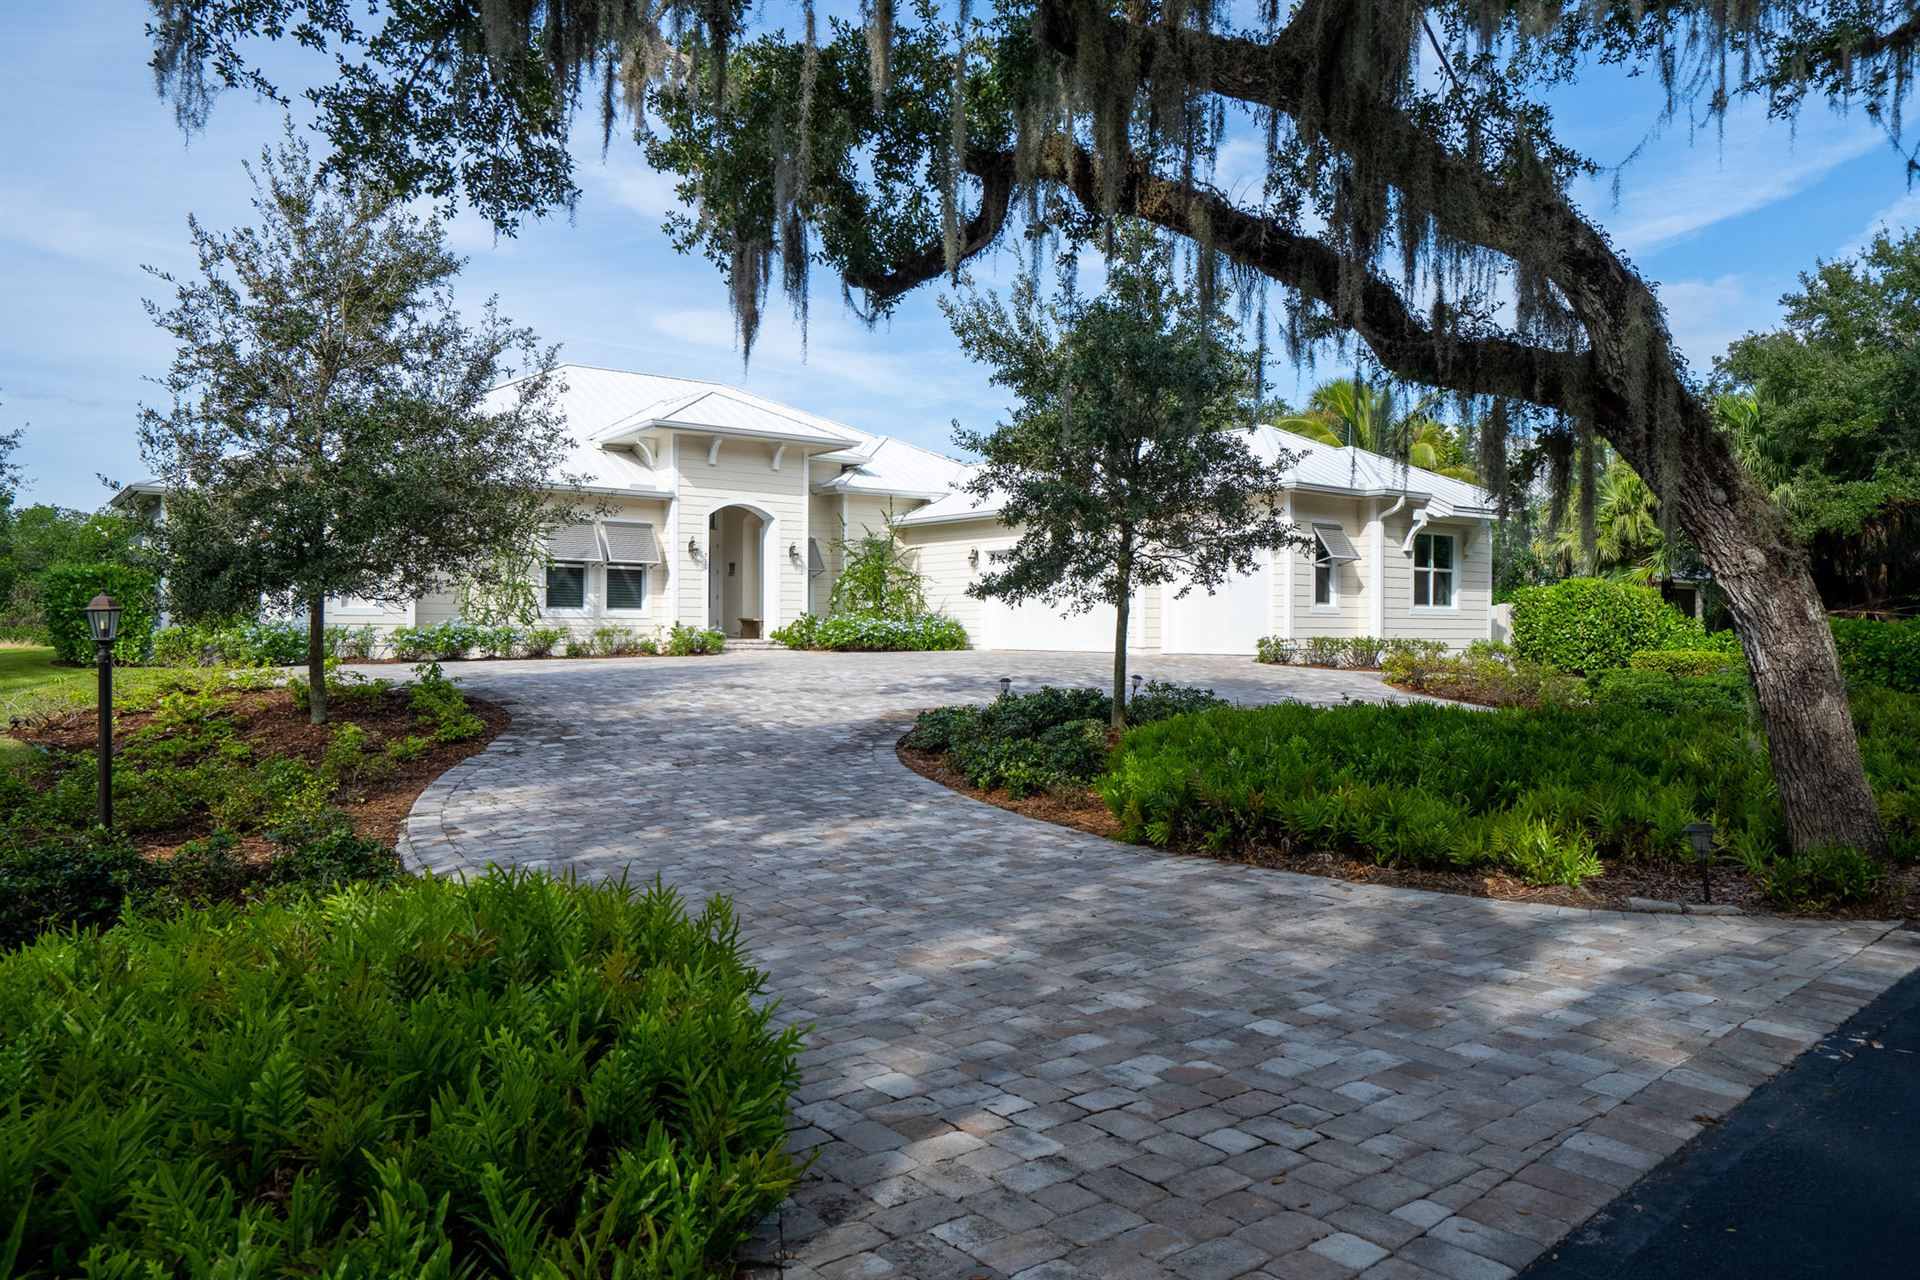 Photo of 710 Canoe Trail, Indian River Shores, FL 32963 (MLS # RX-10593111)